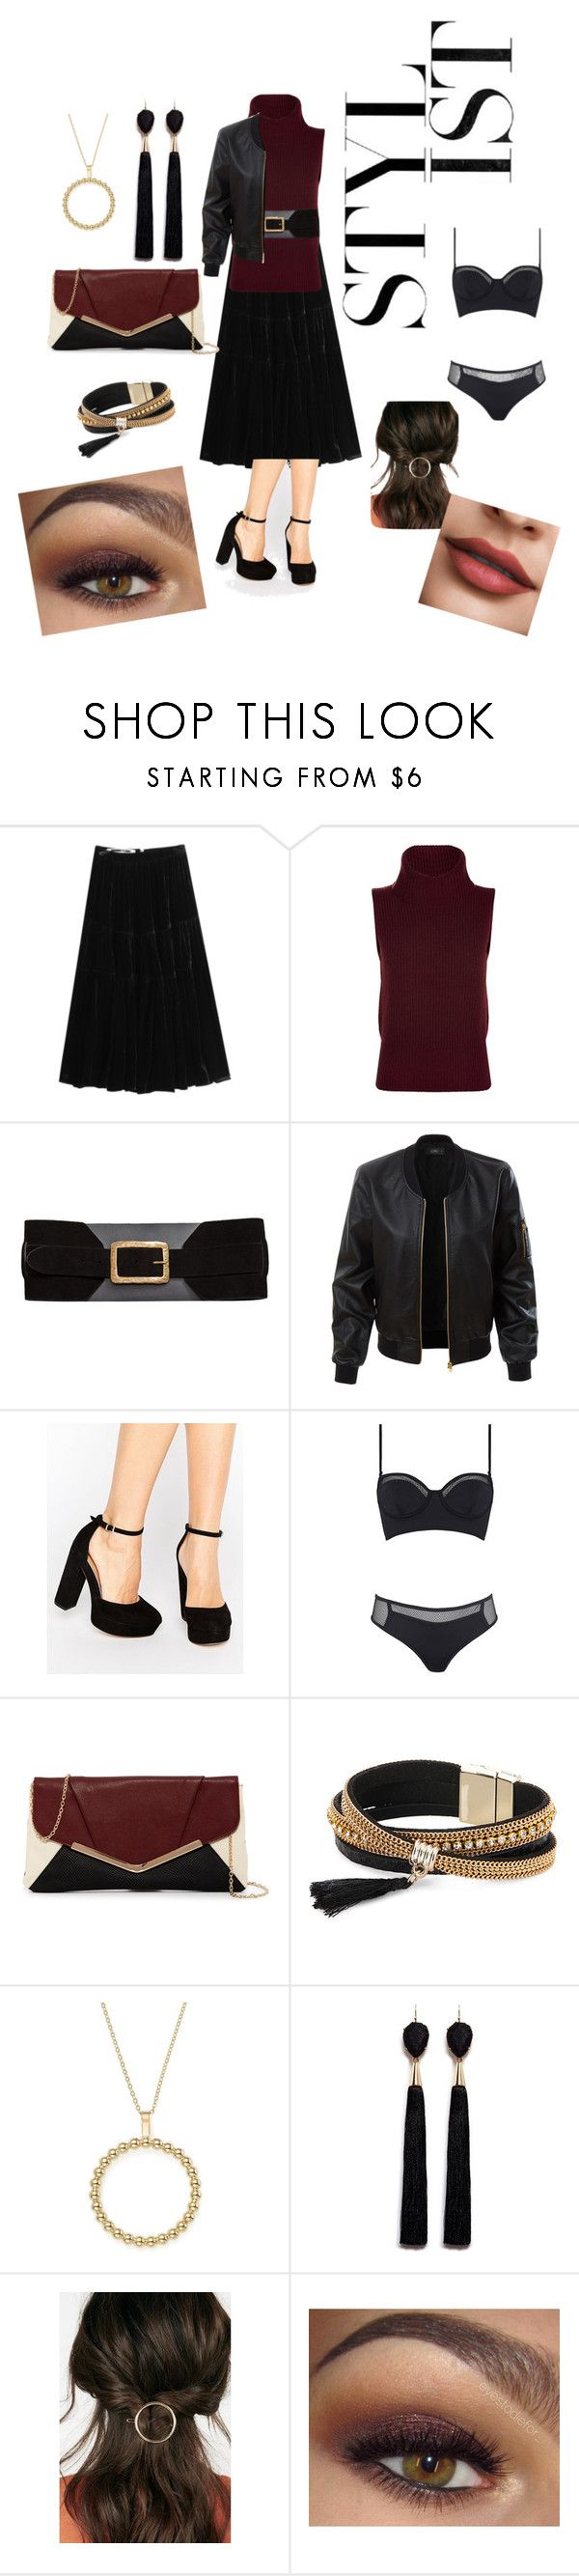 """""""Wine Stylist"""" by ross-stark on Polyvore featuring McQ by Alexander McQueen, Theory, MANGO, LE3NO, ASOS, Kendall + Kylie, Jessica McClintock, Simons, Bloomingdale's and Mignonne Gavigan"""